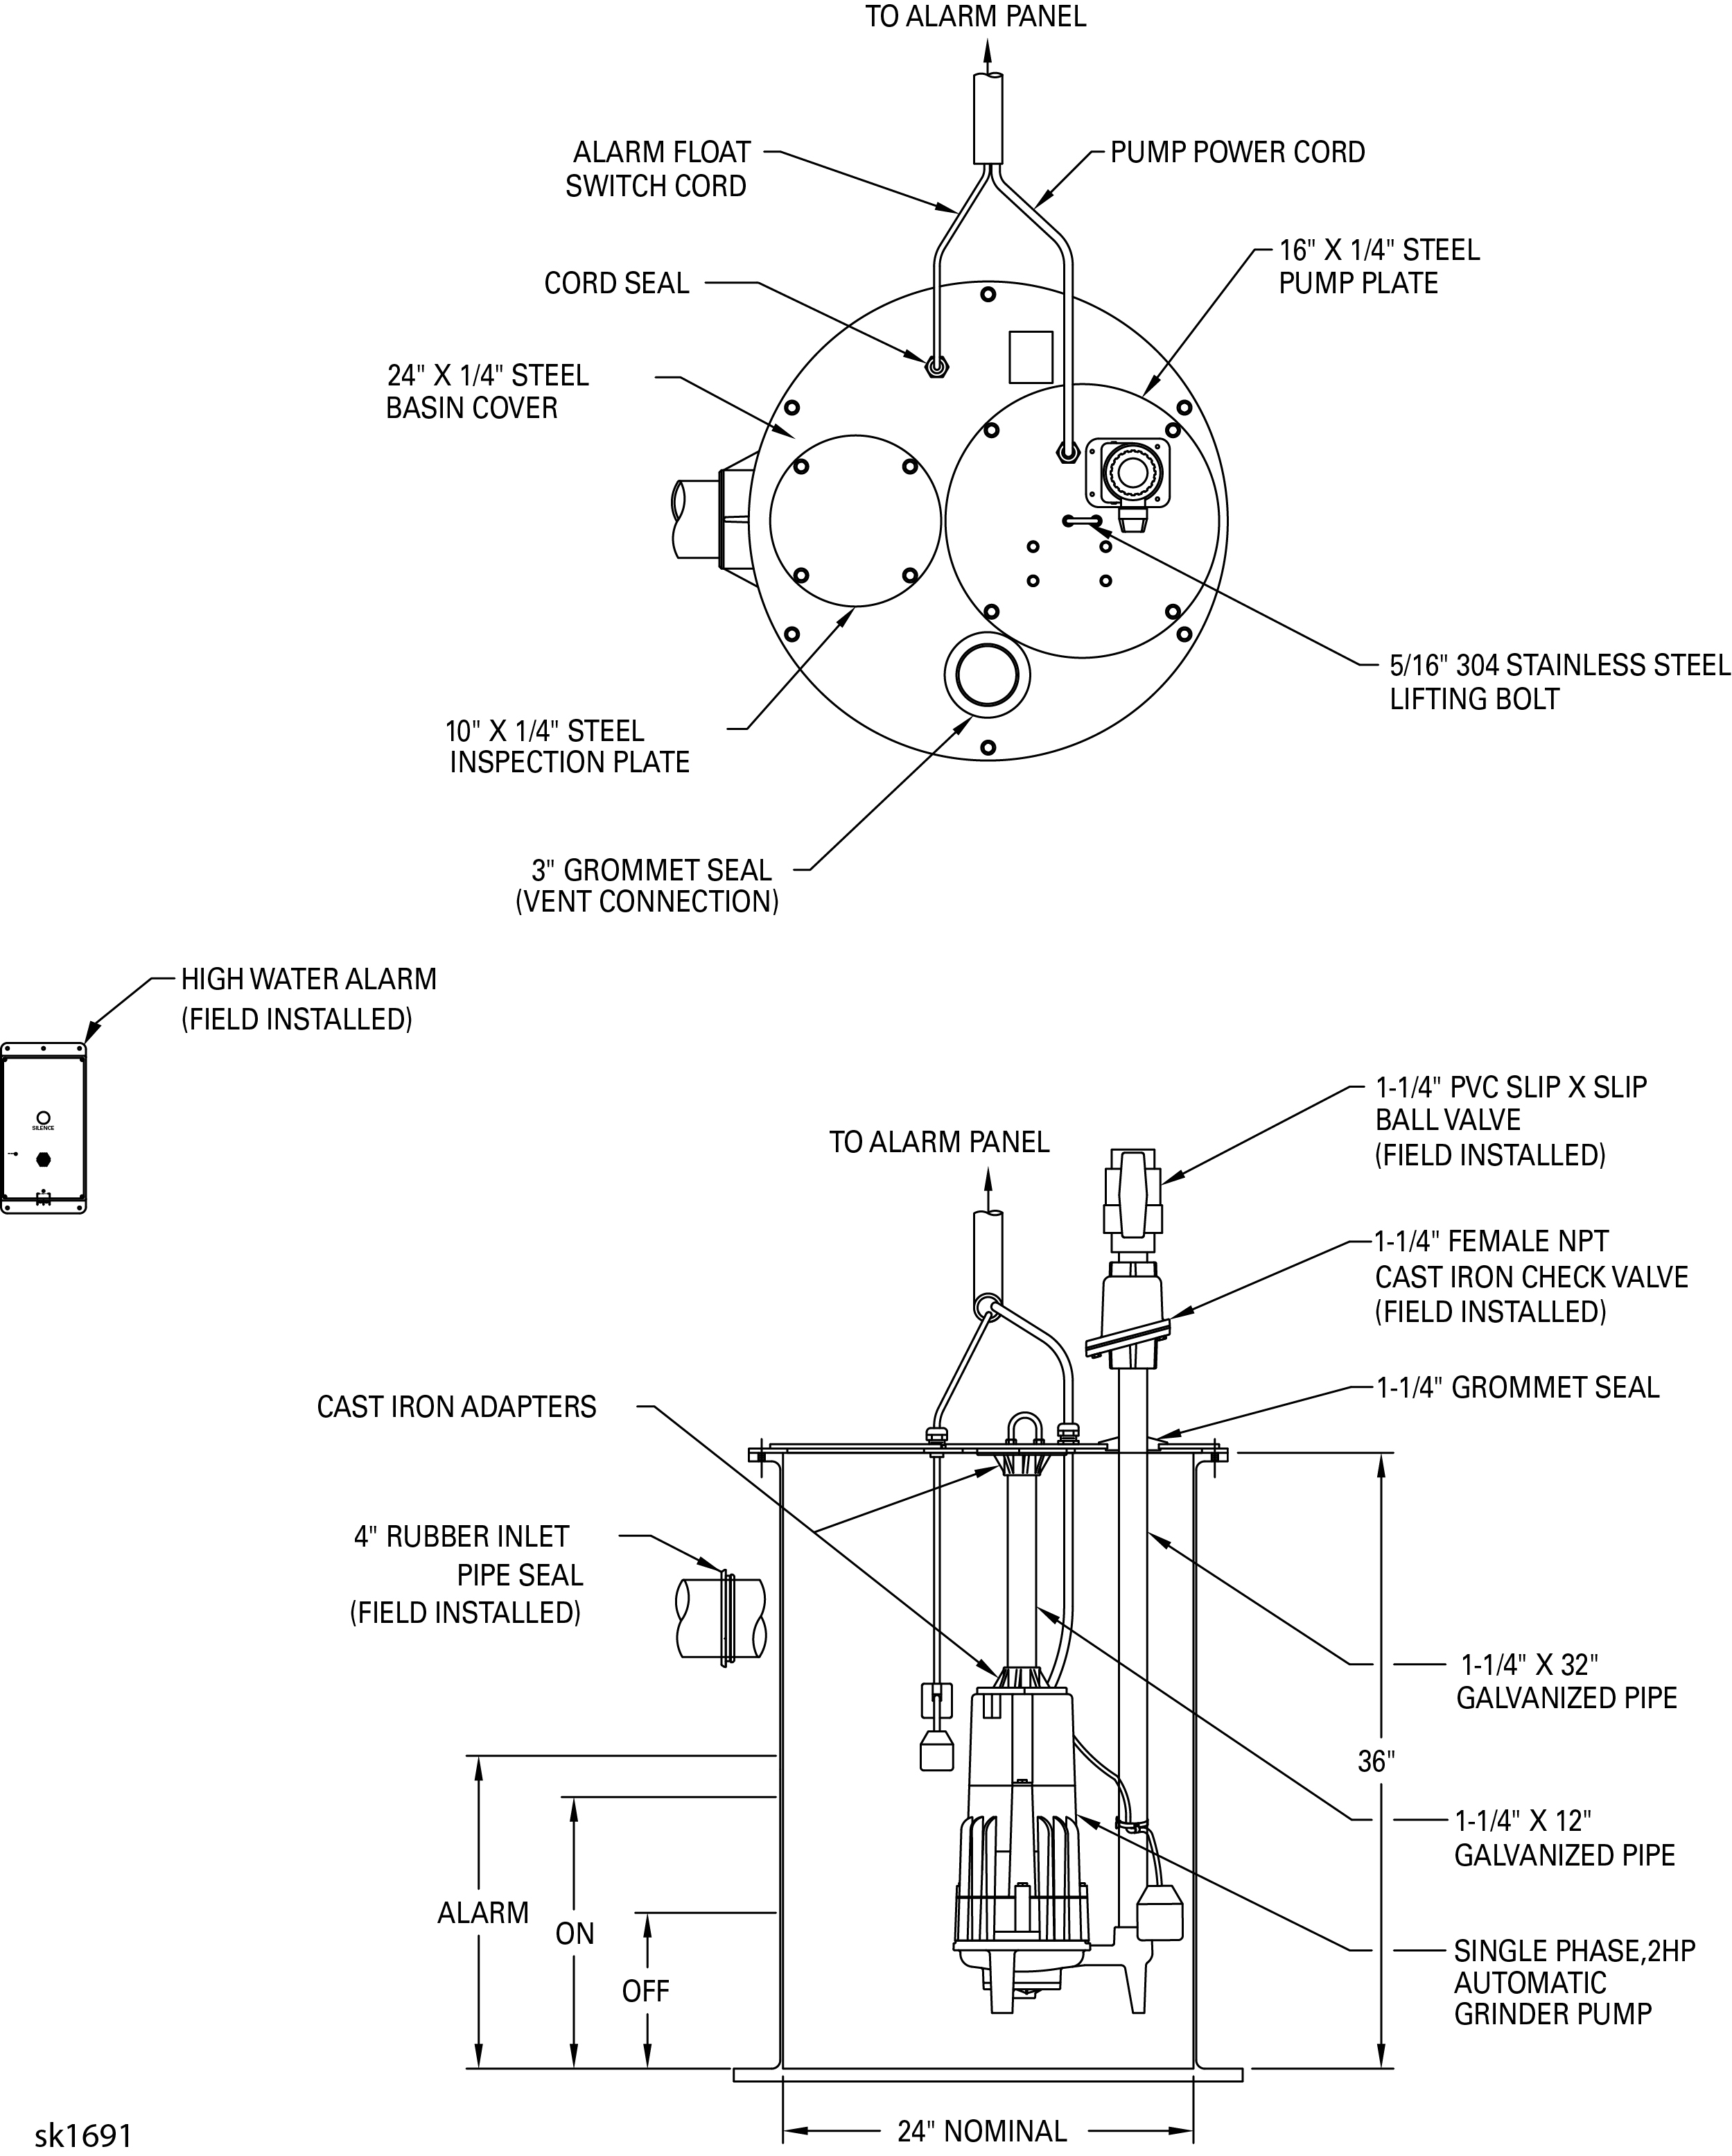 Zoeller Pump Diagram Electrical Wiring Diagrams Submersible Drawing At Getdrawings Com Free For Personal Use Sump Troubleshooting